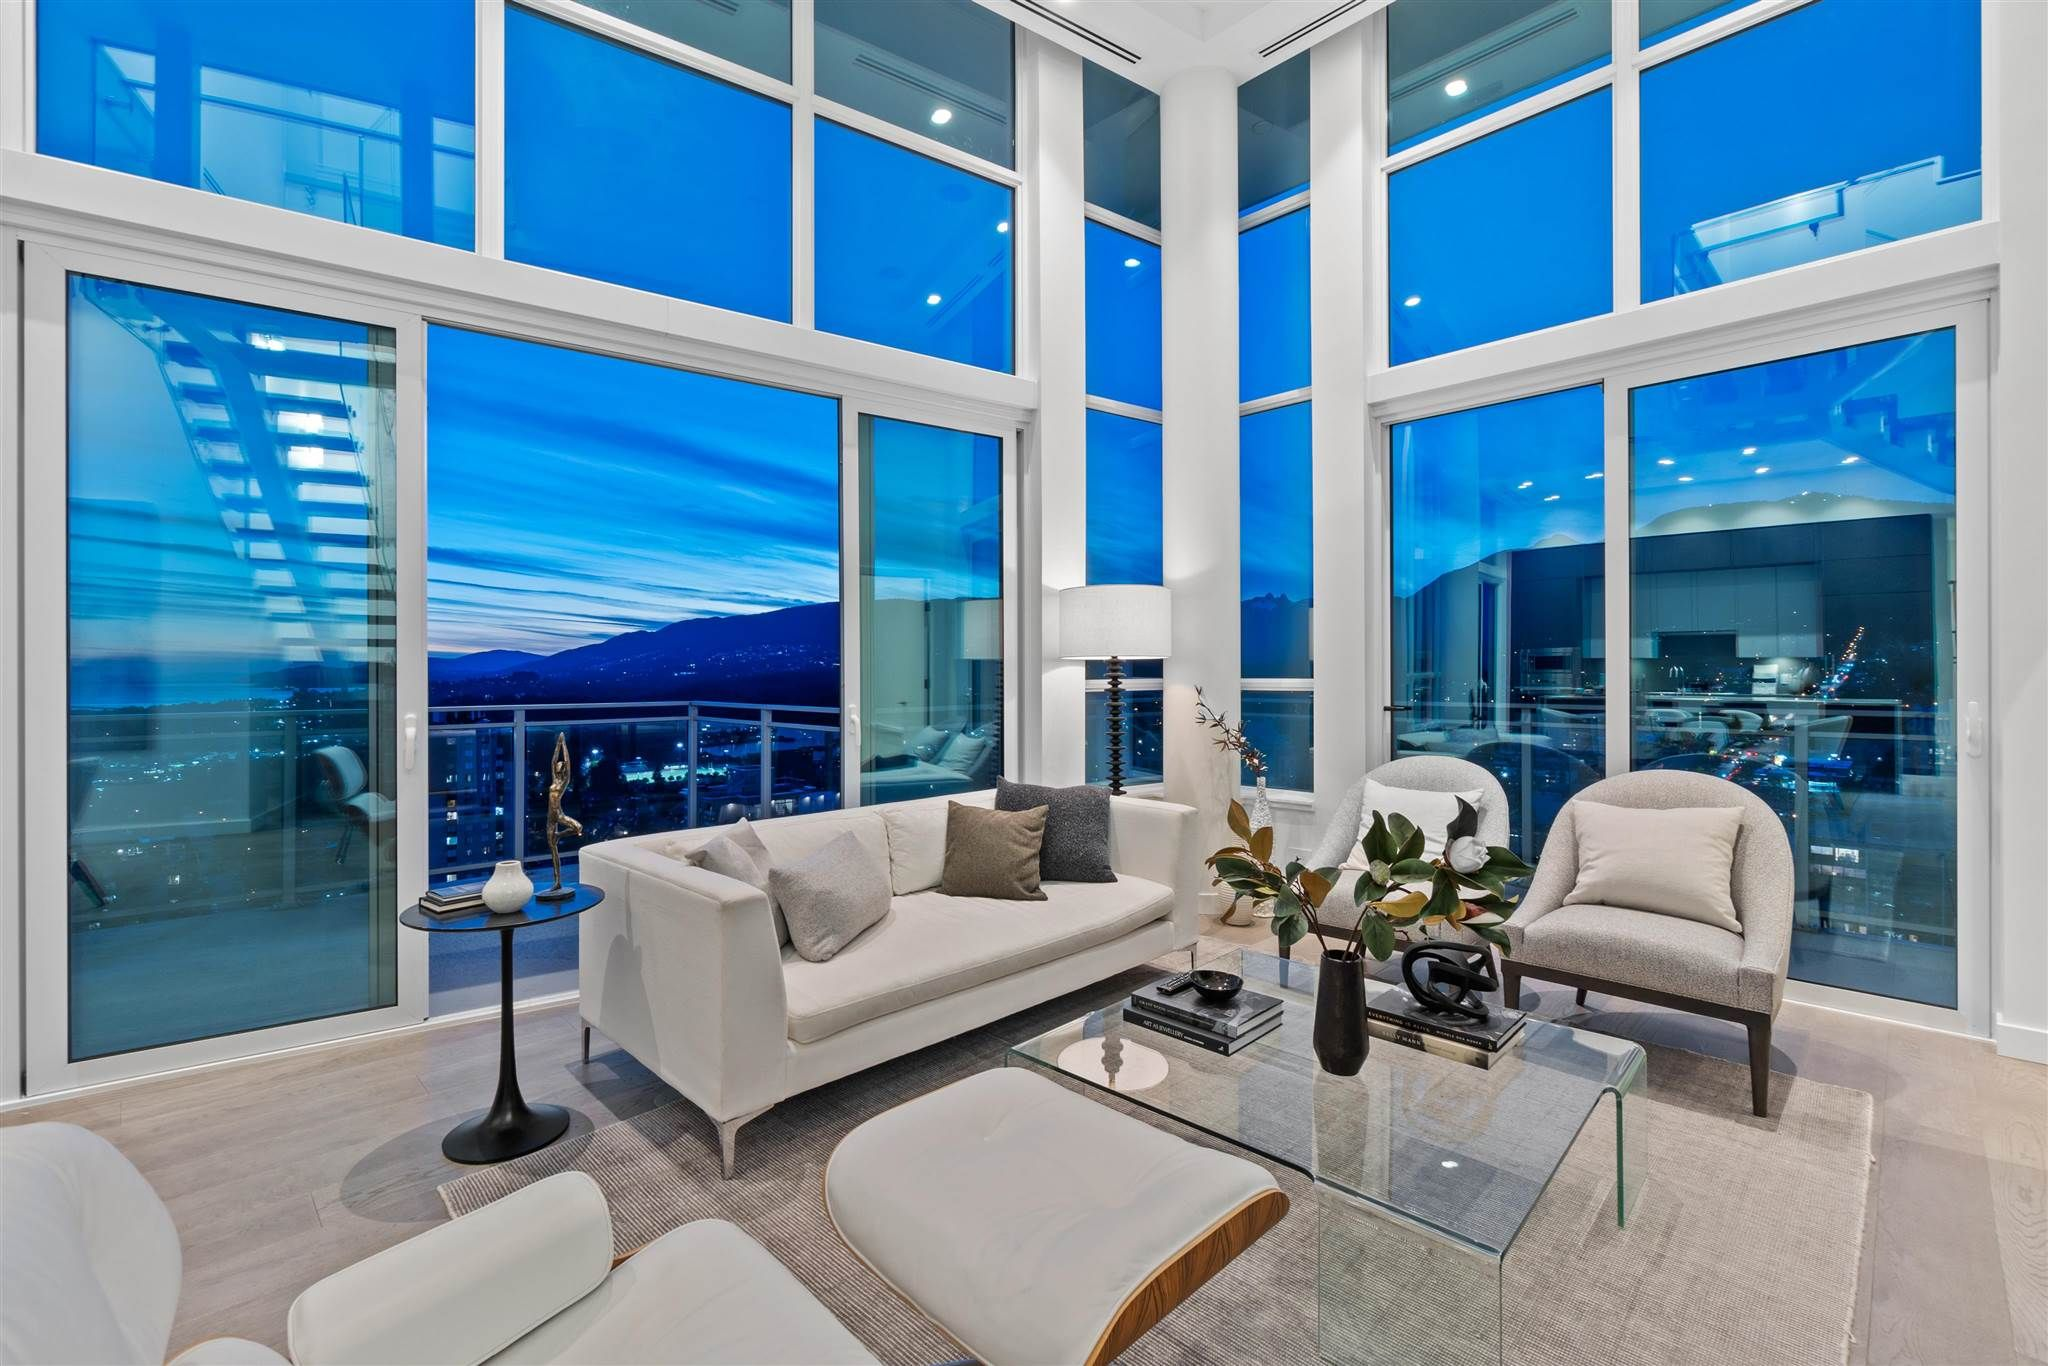 """Main Photo: 2403 125 E 14 Street in North Vancouver: Central Lonsdale Condo for sale in """"Centreview"""" : MLS®# R2595571"""